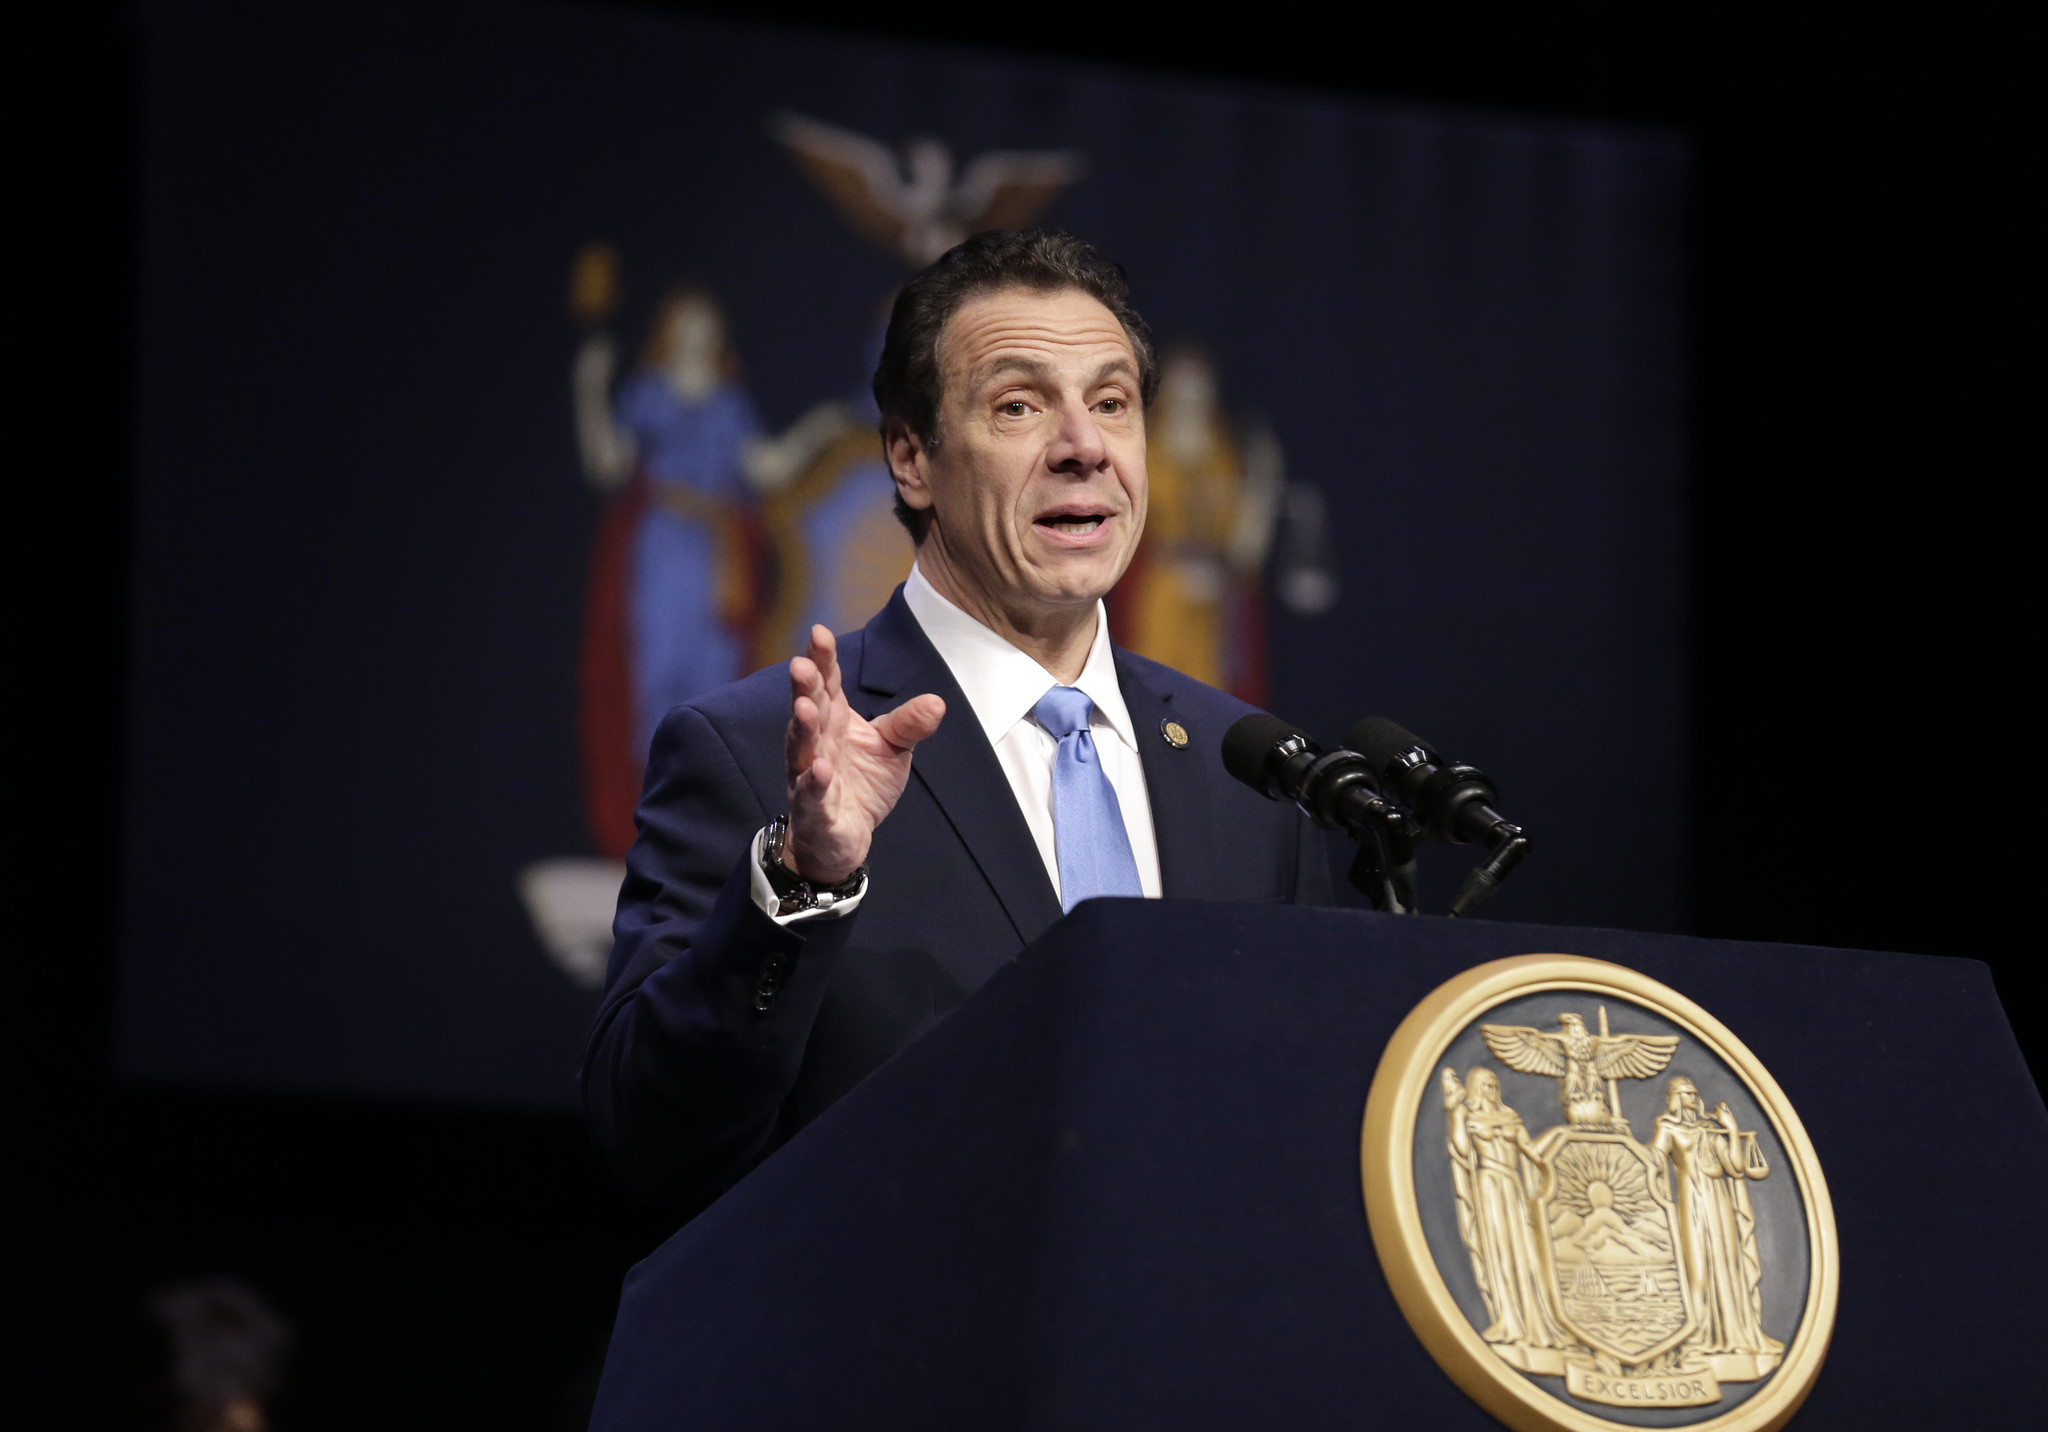 Public financing needs a downpayment now: Gov. Cuomo needs to prepare New York for a new era of fairer democracy